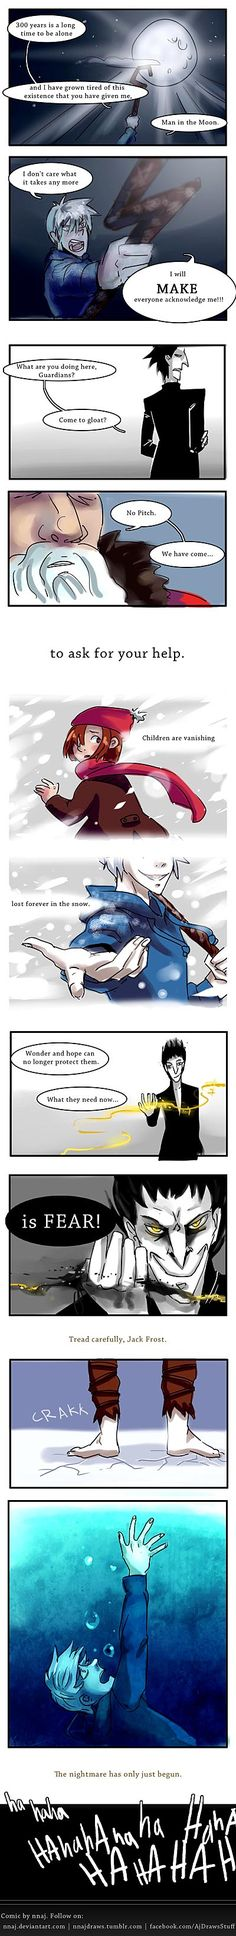 RotG: Good Pitch vs Evil Jack by nnaj.deviantart.com on @deviantART - A short comic speculating how Rise of the Guardians would play out had Jack and Pitch's roles been reversed.